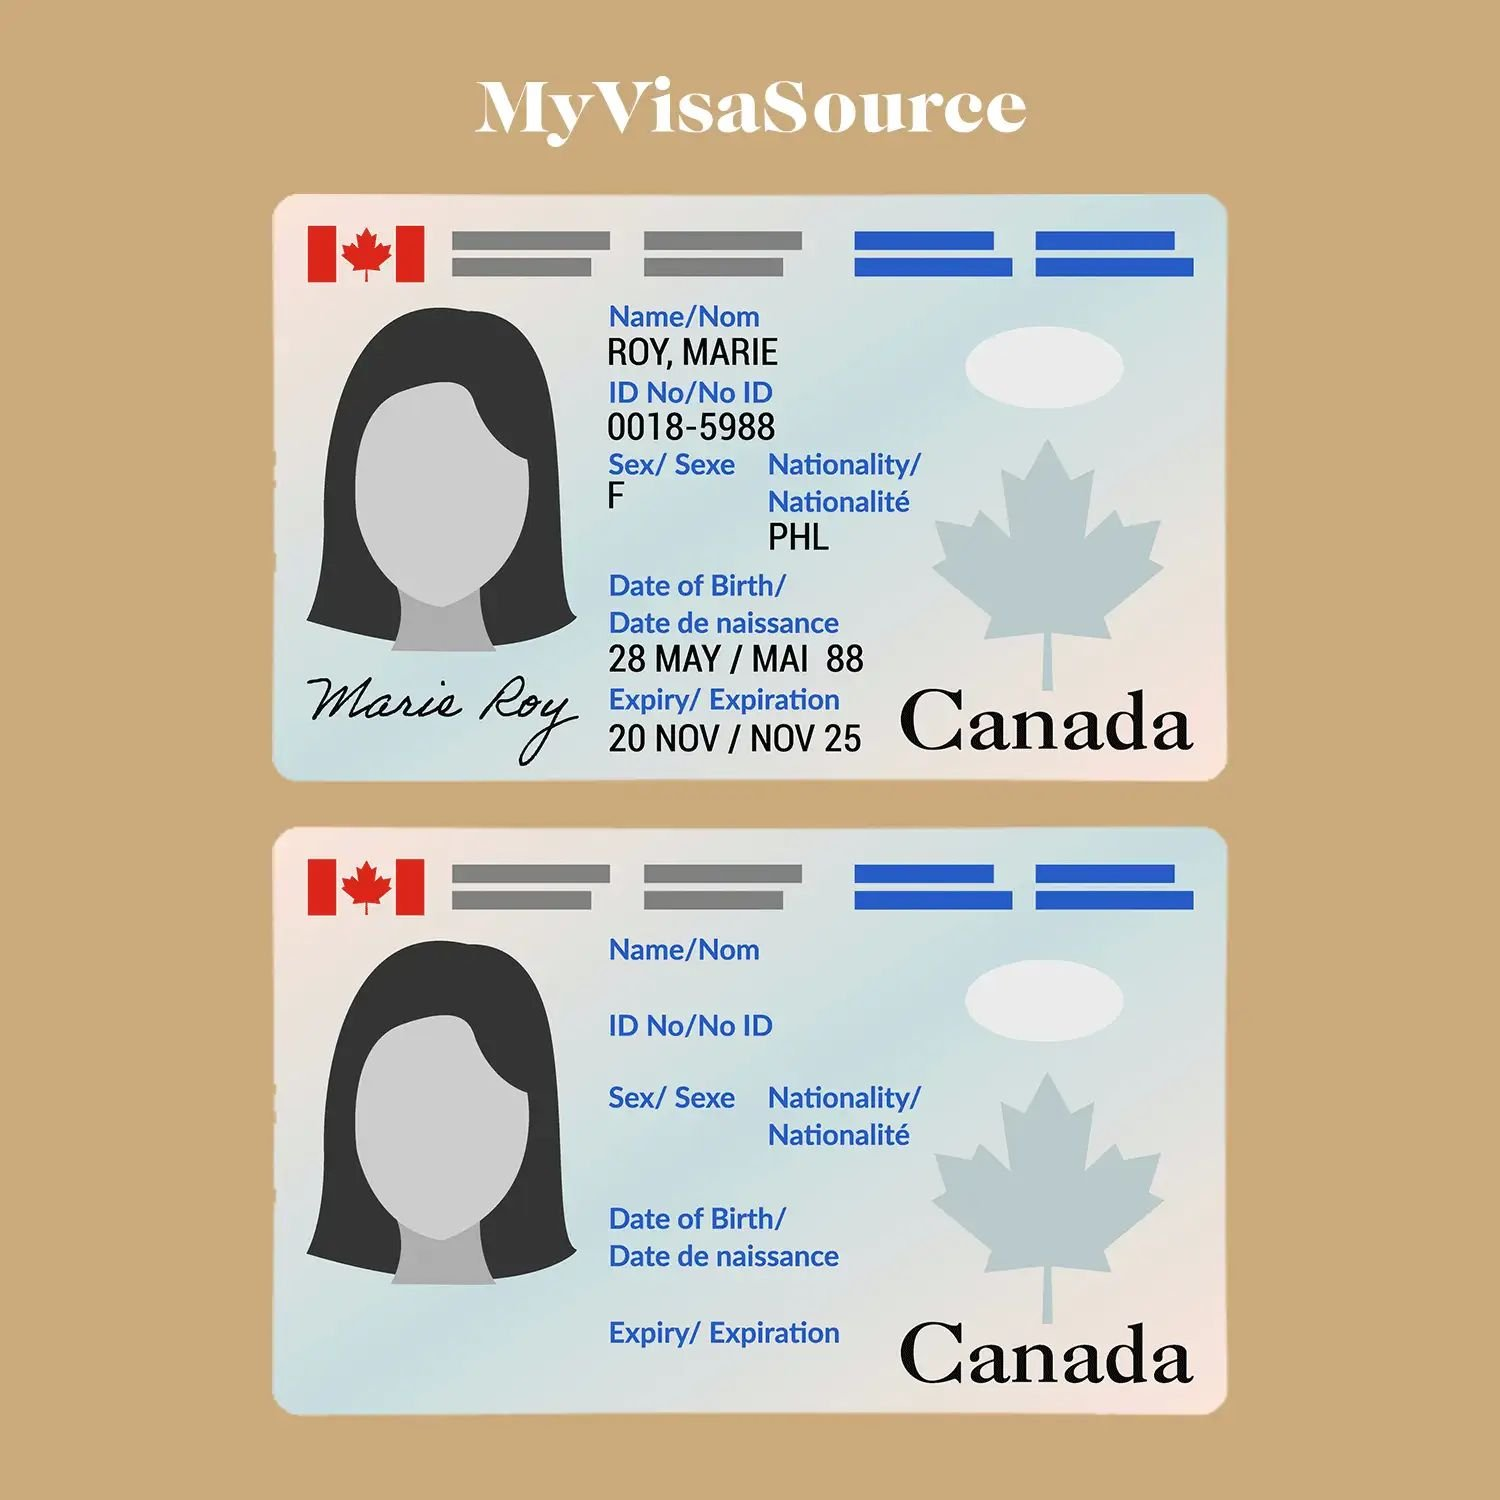 cartoonish-representation-of-a-canadian-permanent-resident-card-on-brown-background-by-my-visa-source .png